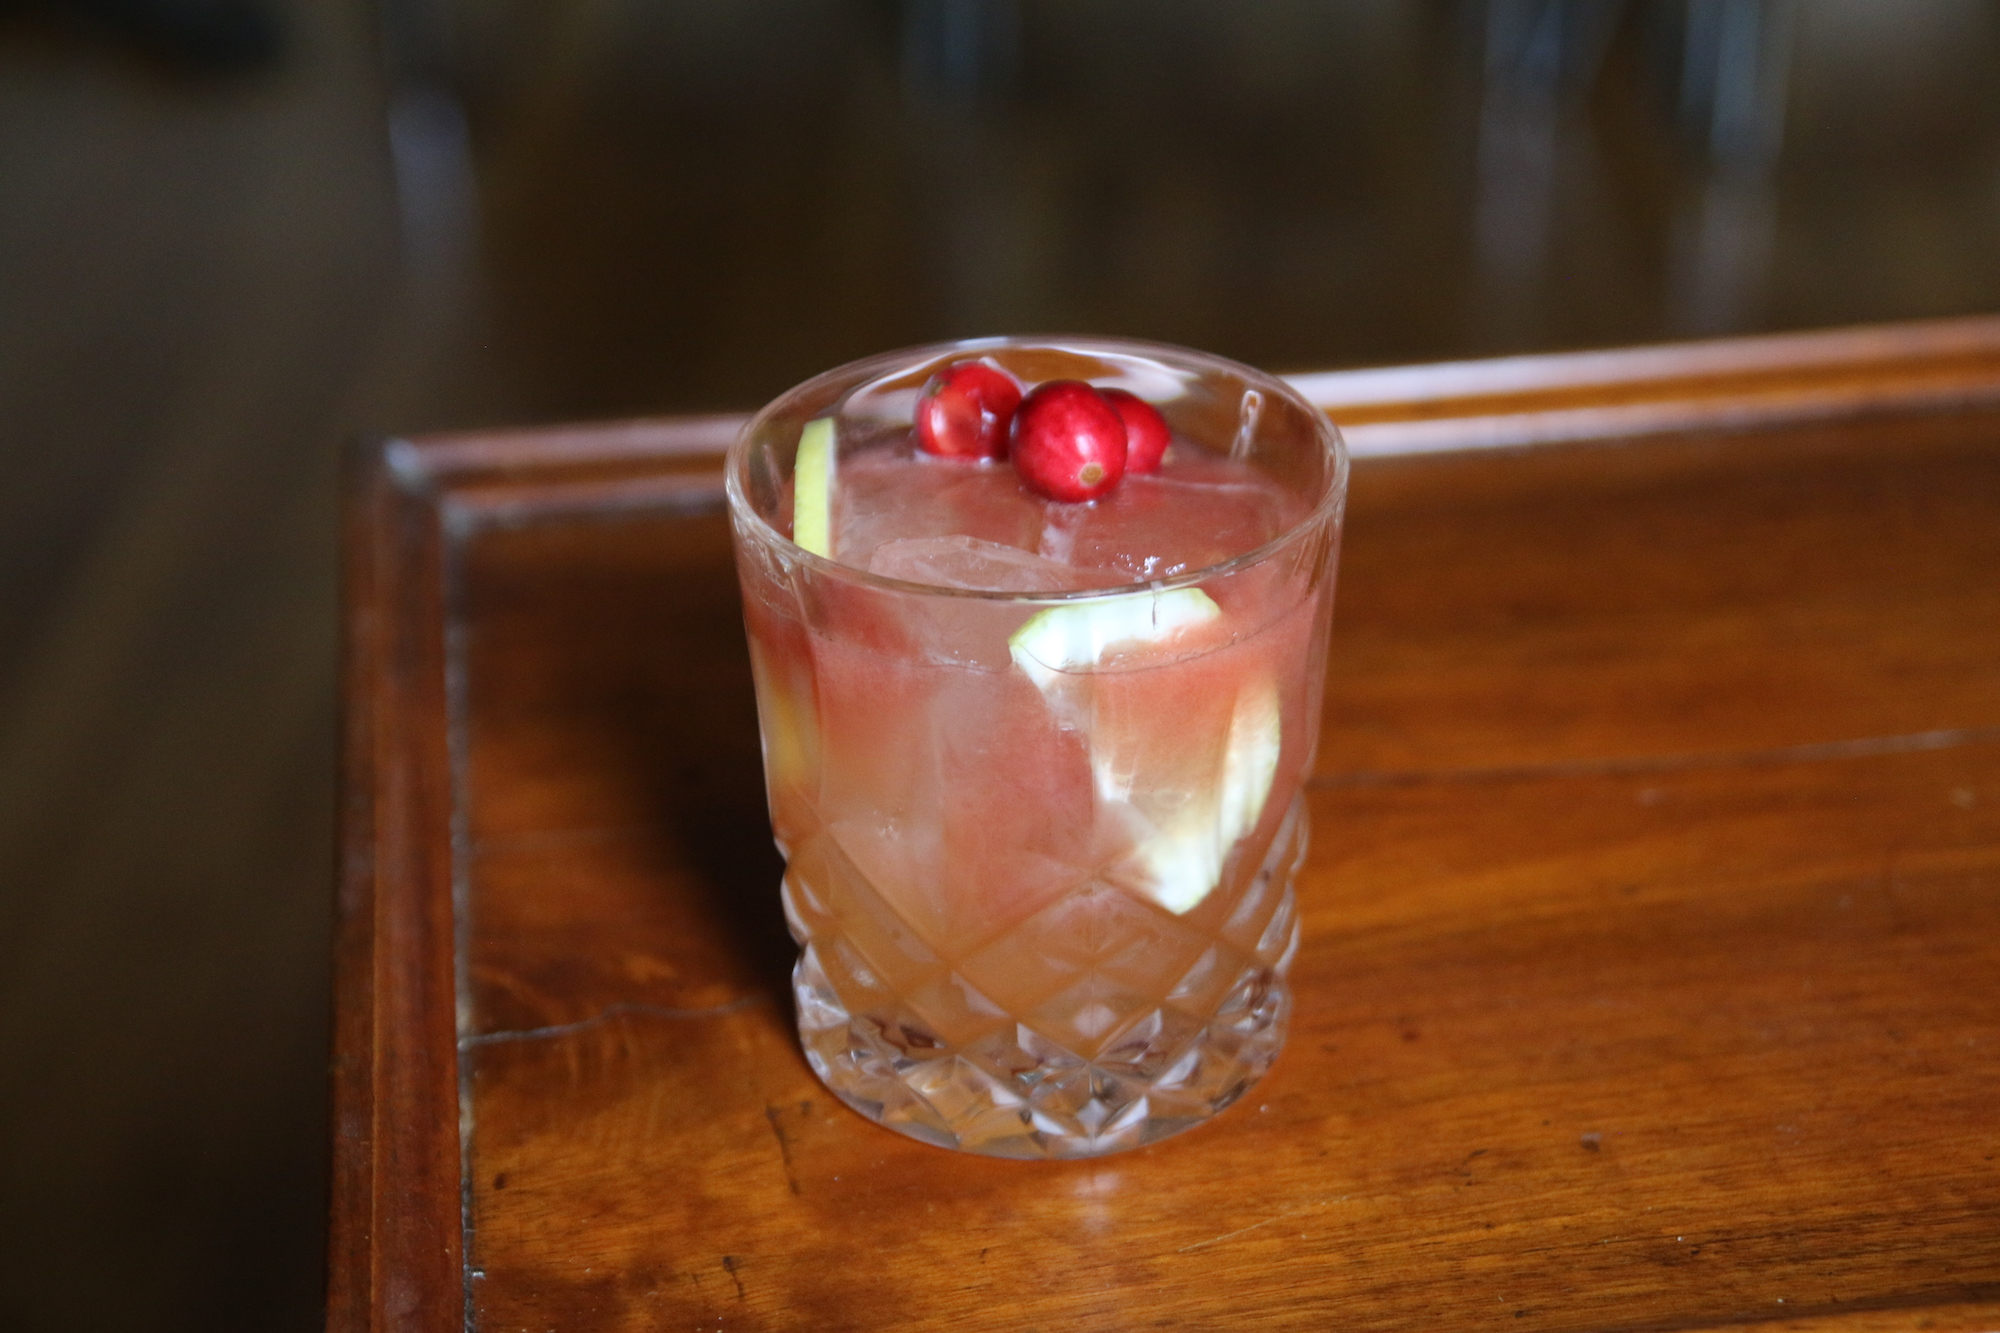 cranberry-vodka-carey-jones-blog1117.jpeg